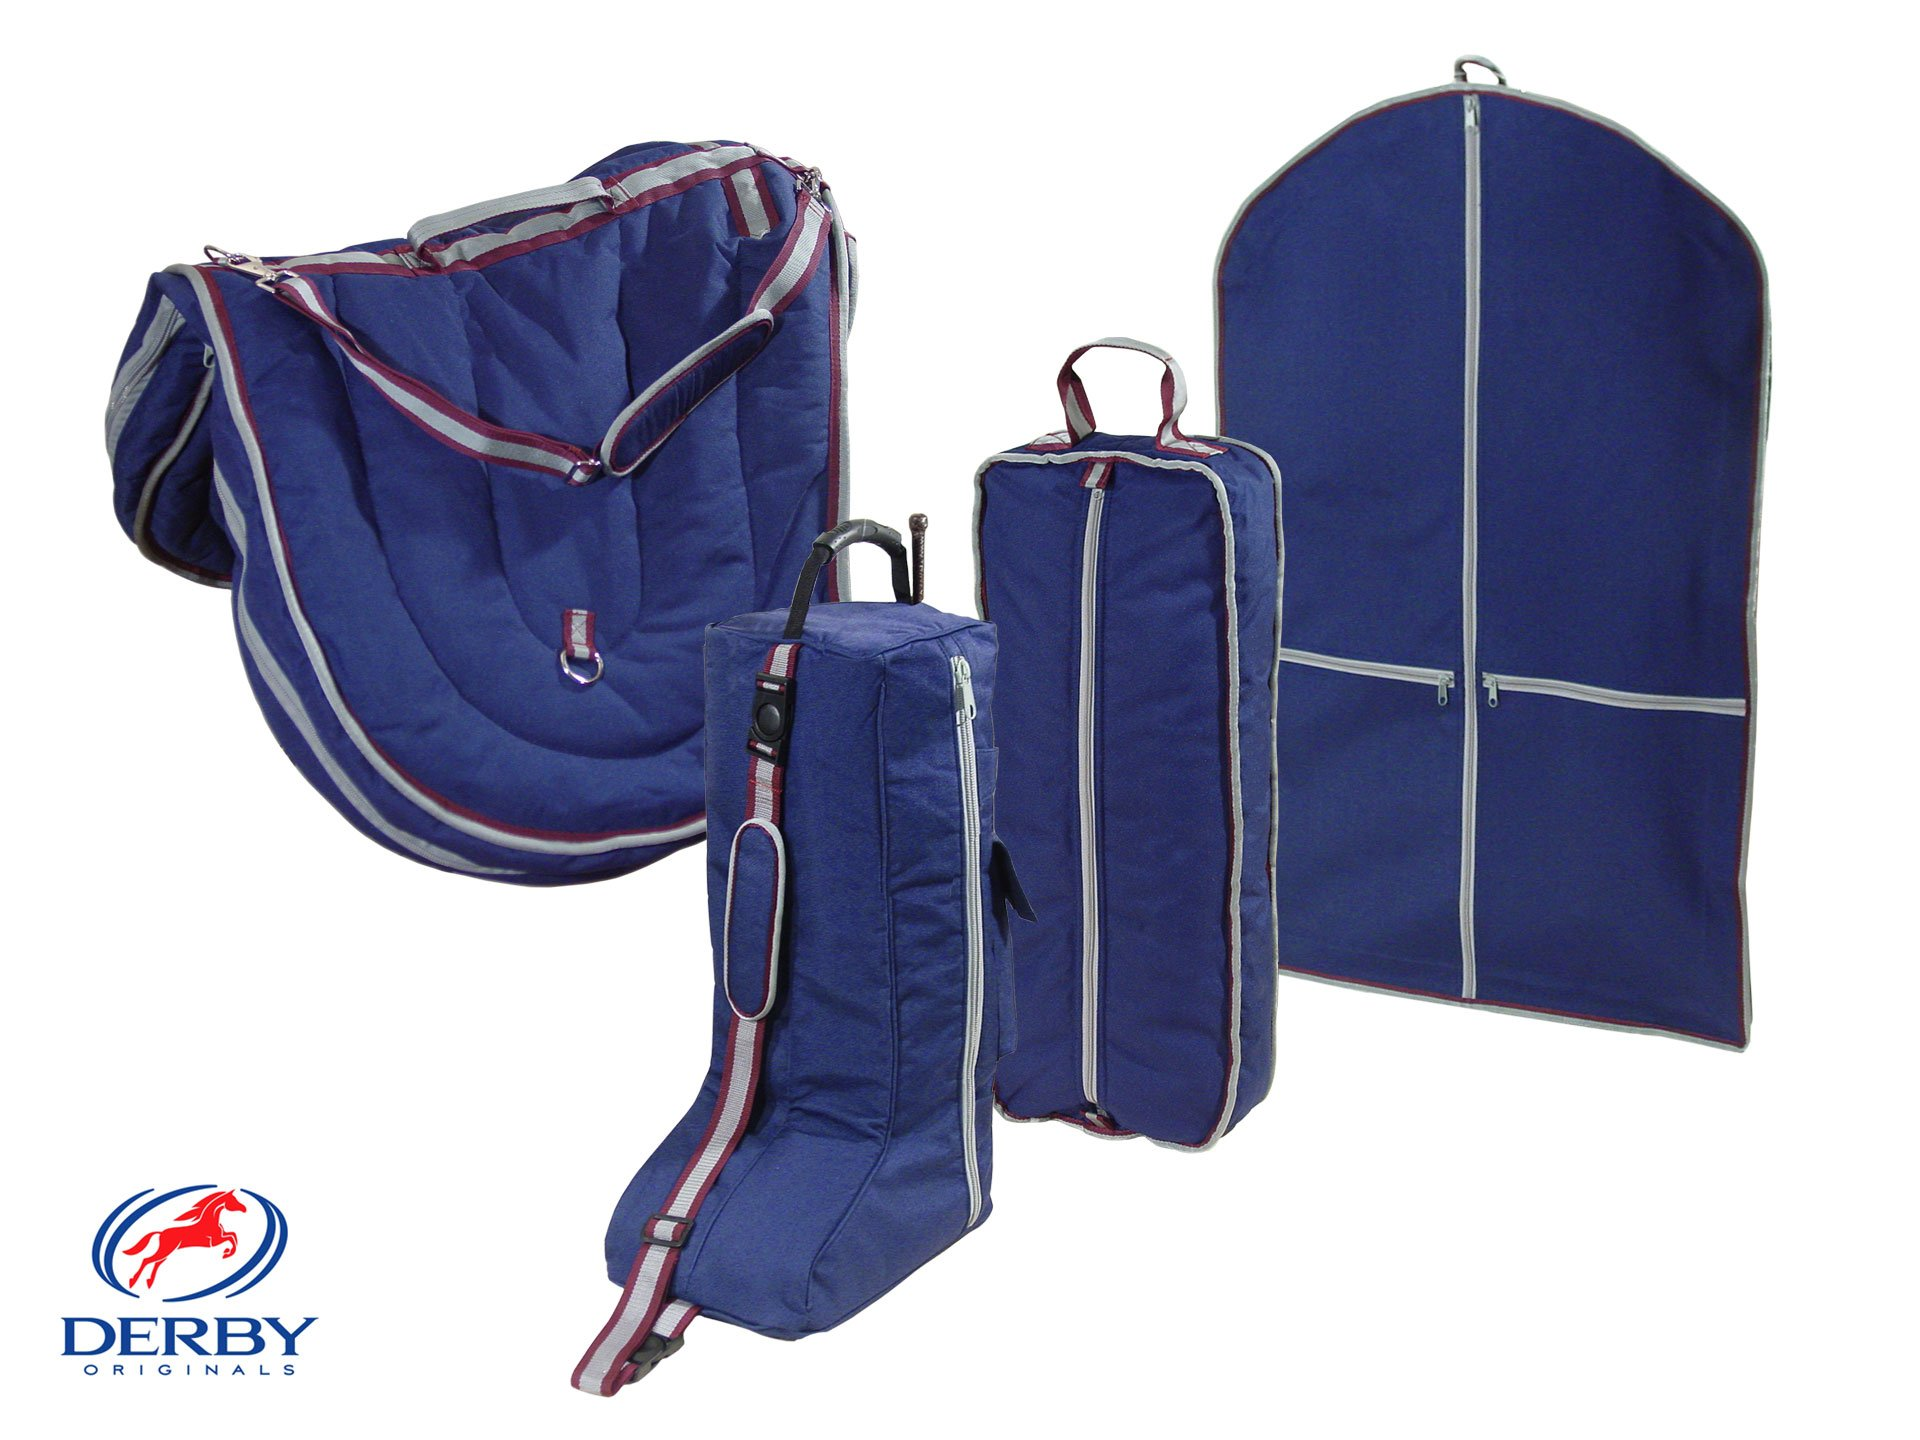 Derby English Horse Saddle, Bridle, Boot, and Garment Carry Bag Set with One year warranty